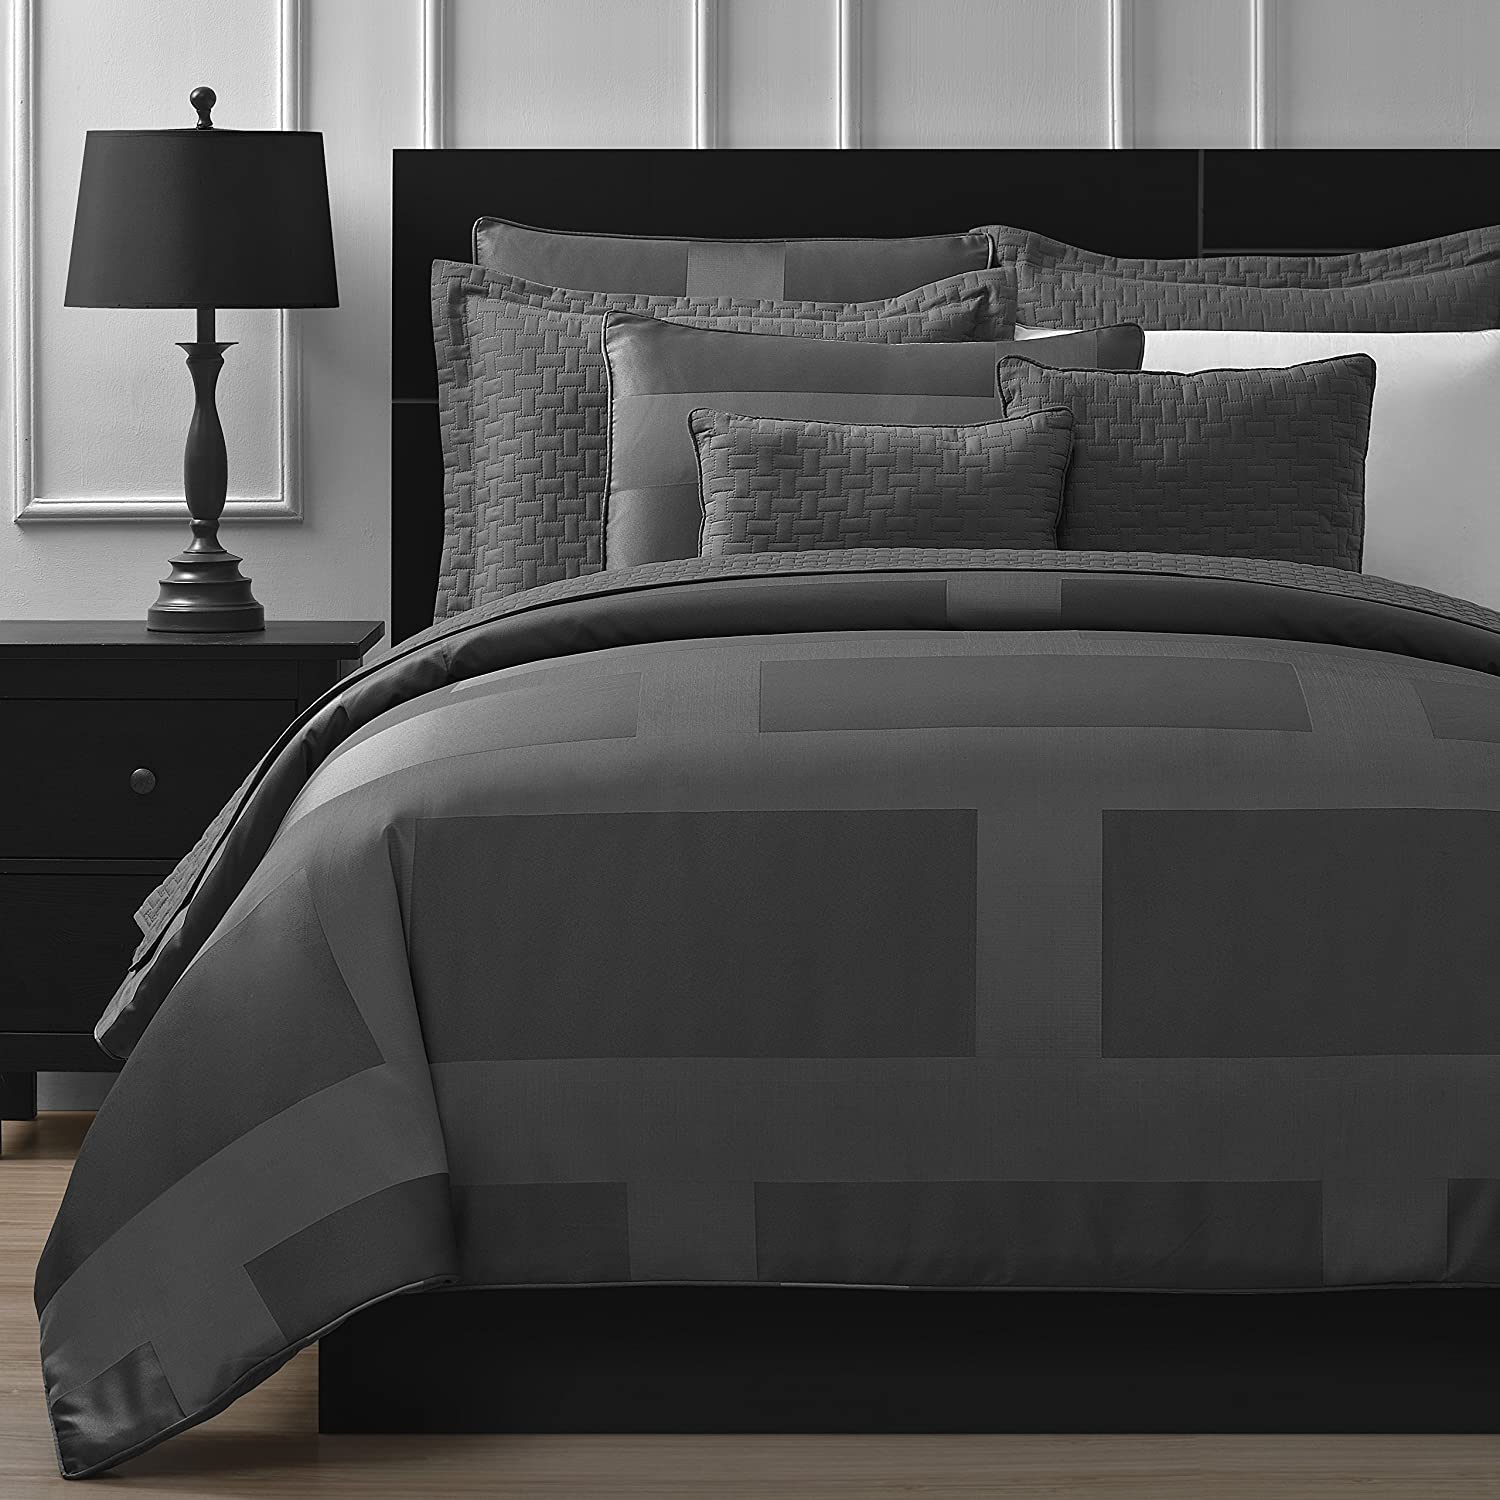 Comfy Bedding Frame Jacquard Microfiber King 5-piece Comforter Set, Gray